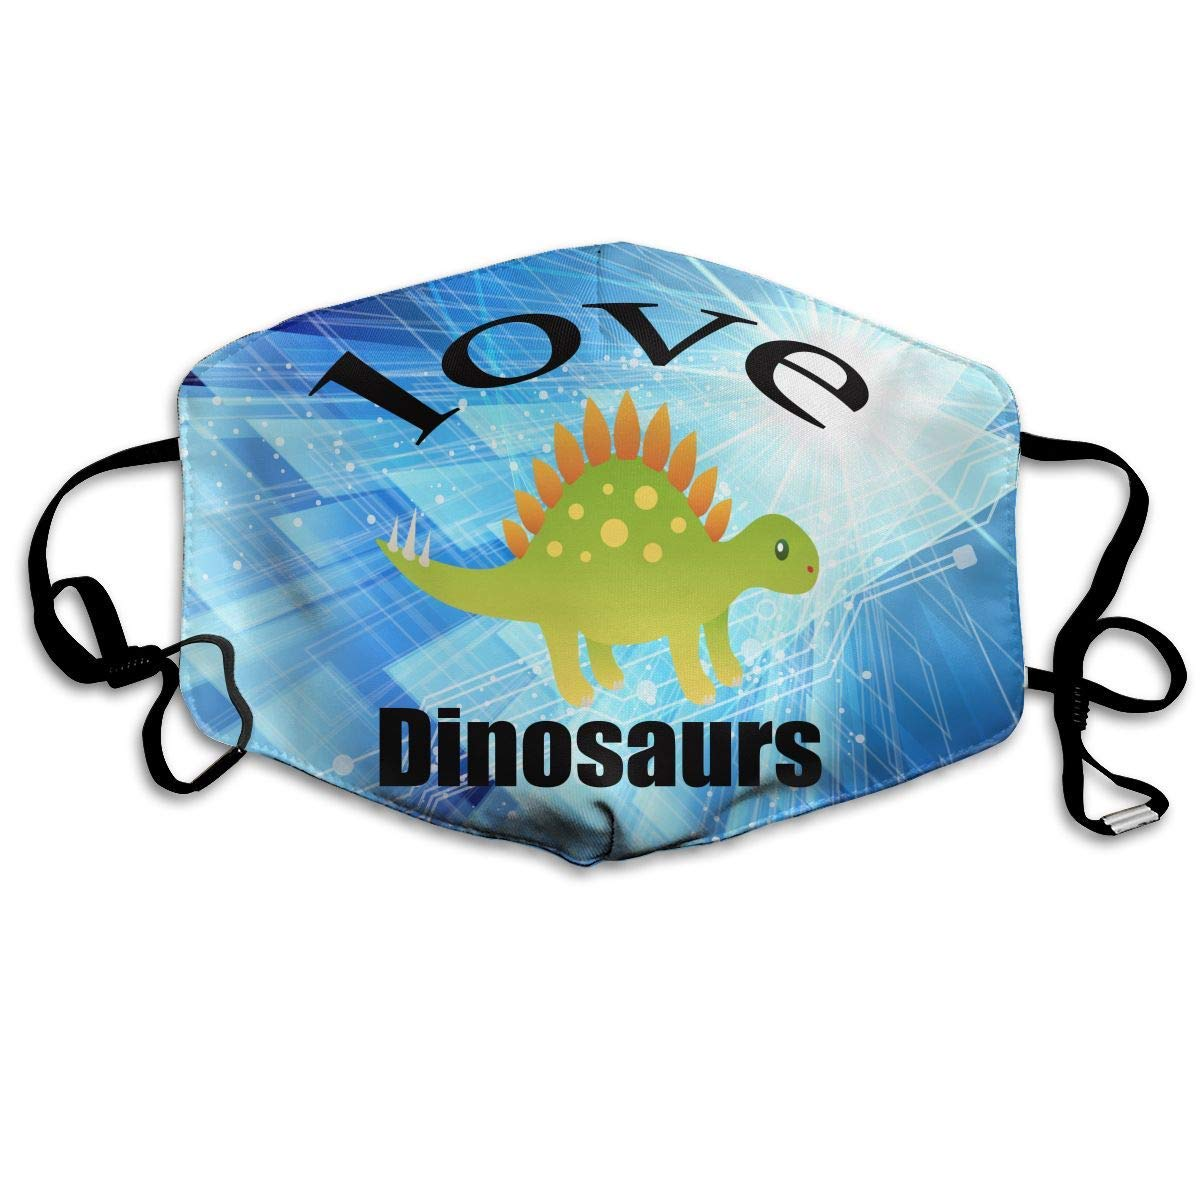 Xdevrbk Windproof Dust Protection Balaclava Full Face Mask Love Dinosaurs Mouth Mask Unisex4